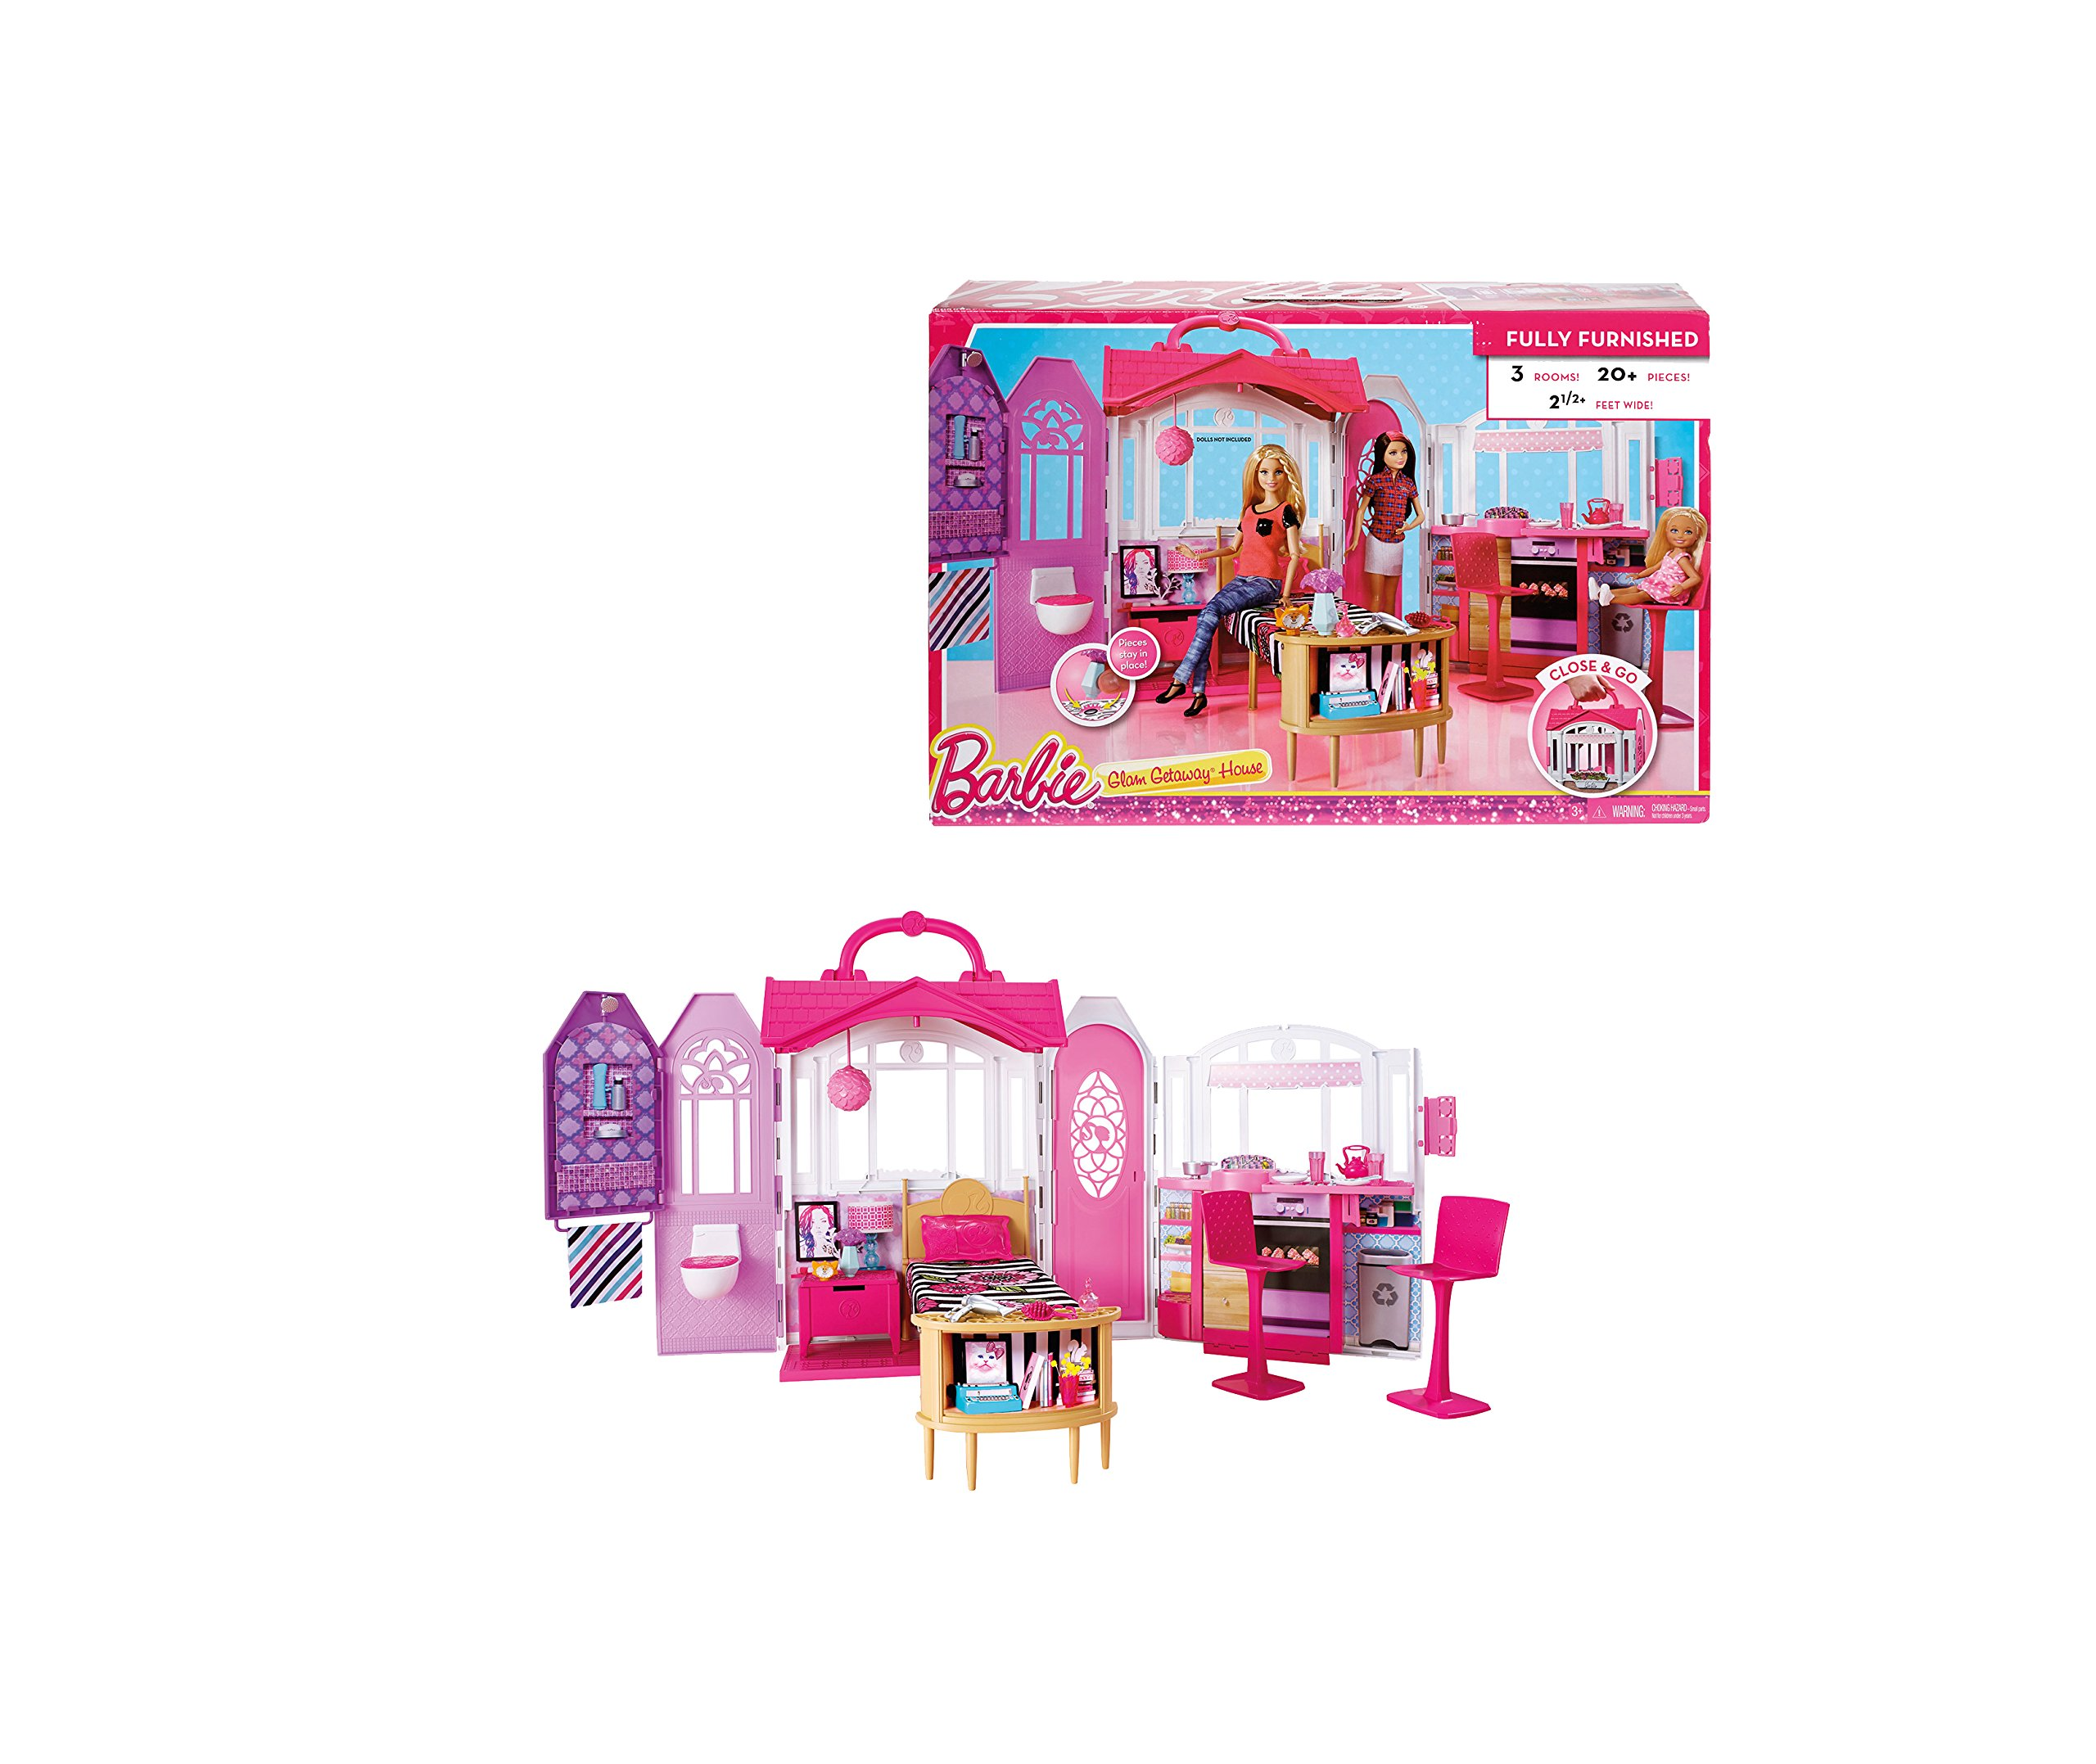 Get Your Dream Affordable: Barbie Glam Gateway Dream House Games Girl Toy Boxes For